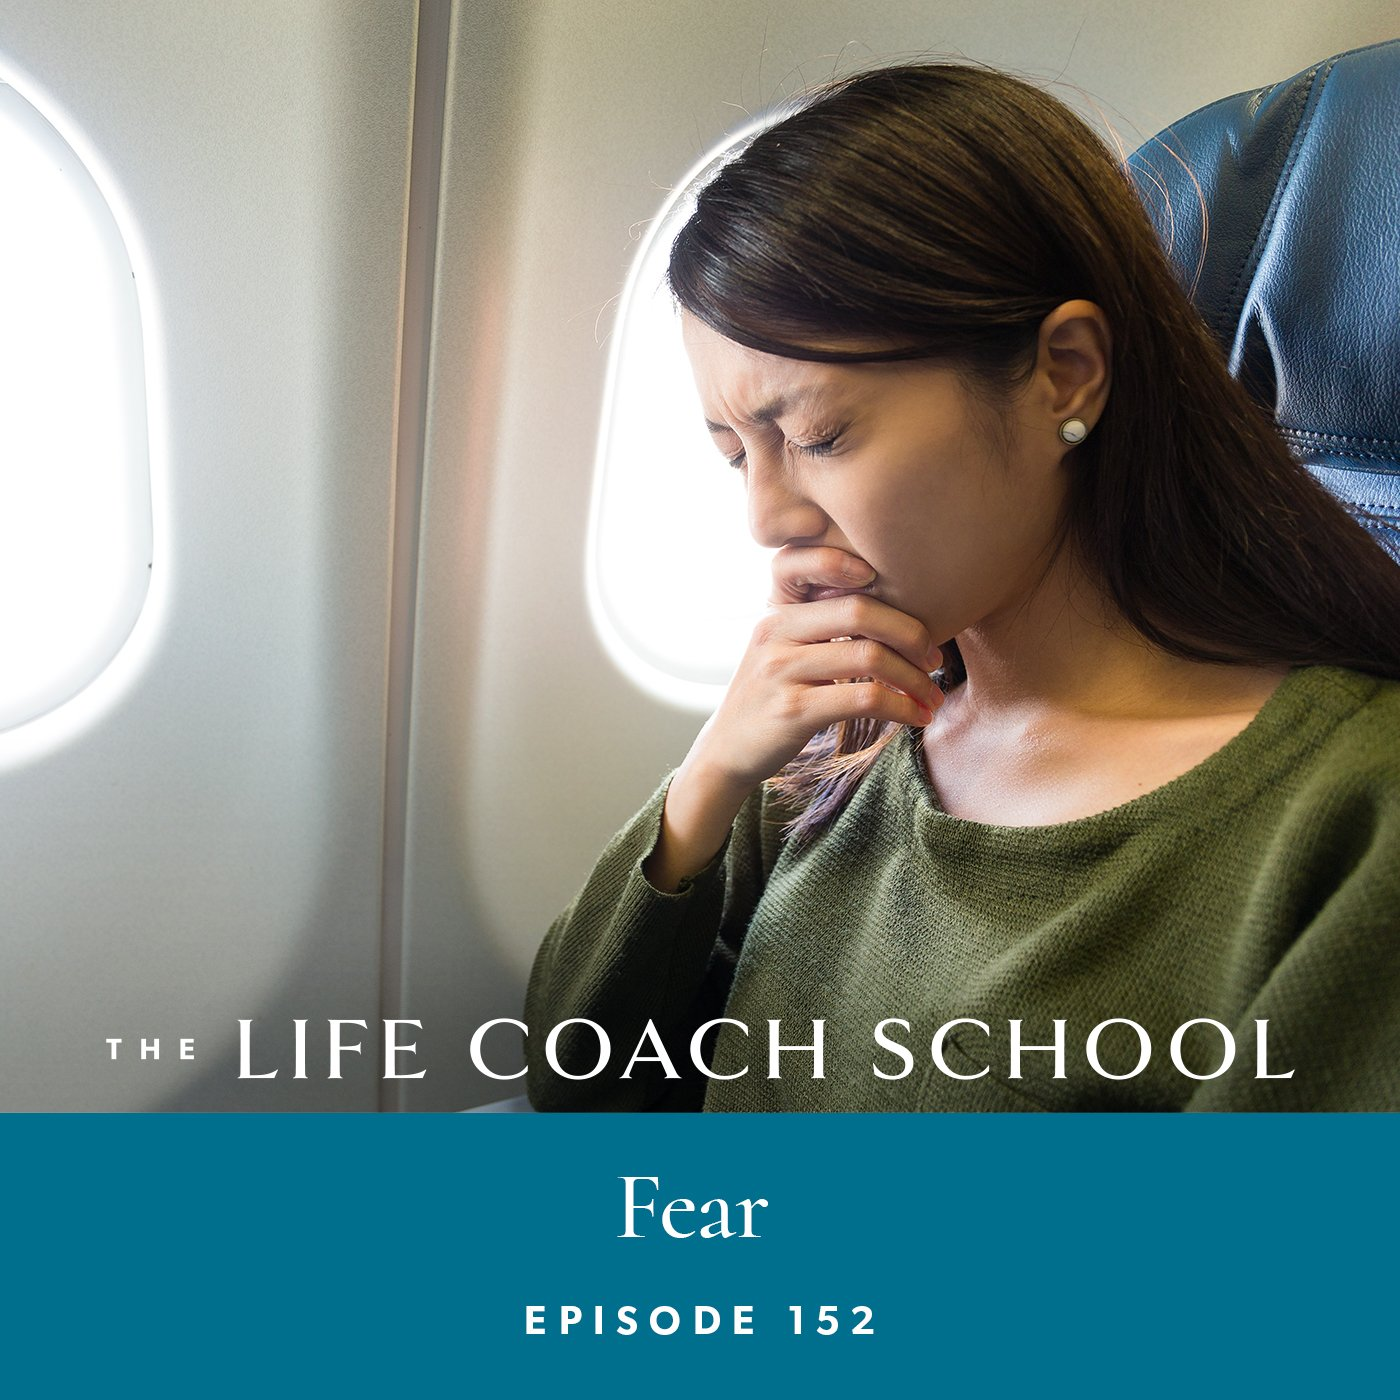 The Life Coach School Podcast with Brooke Castillo | Episode 152 | Fear